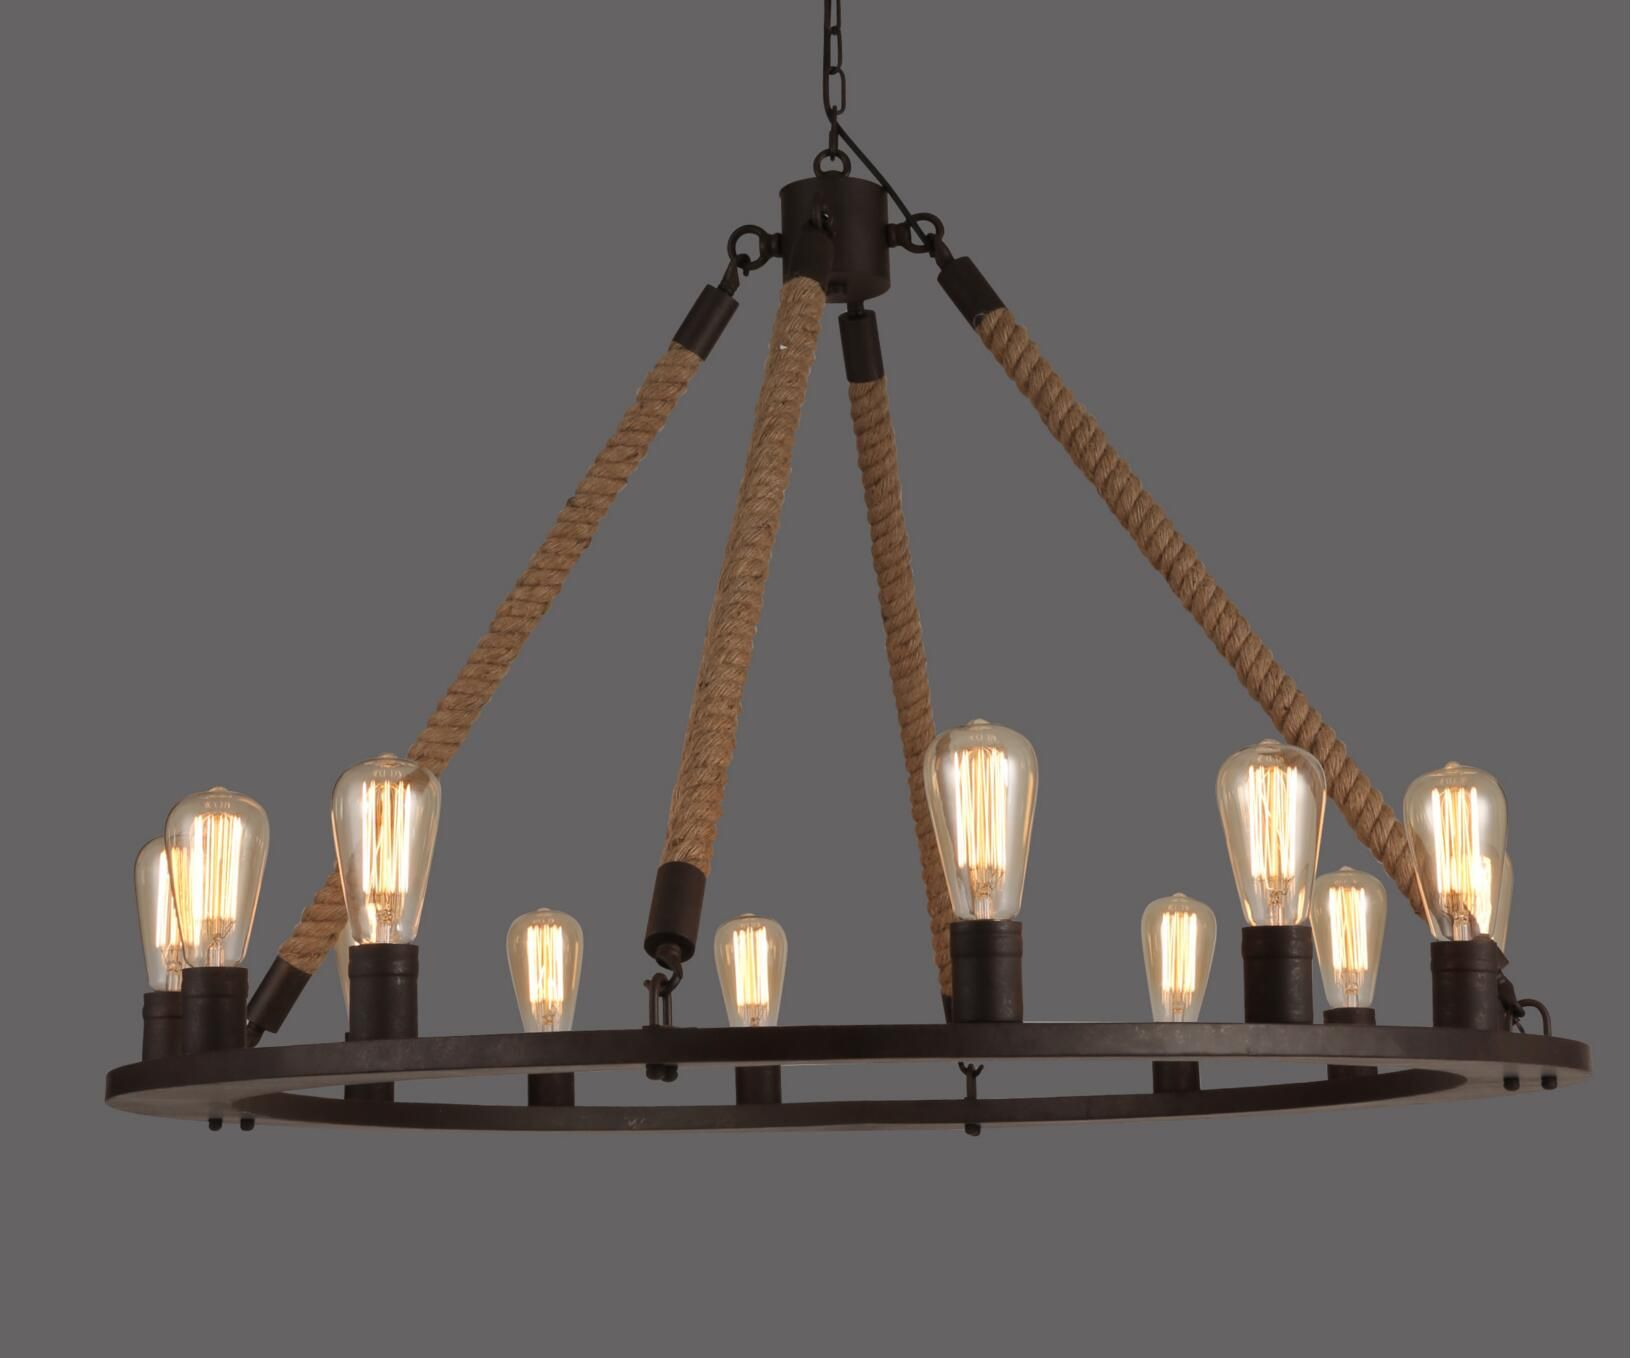 Rope filament round chandelier 42 rope filament chandelier rope filament round chandelier 42 aloadofball Gallery